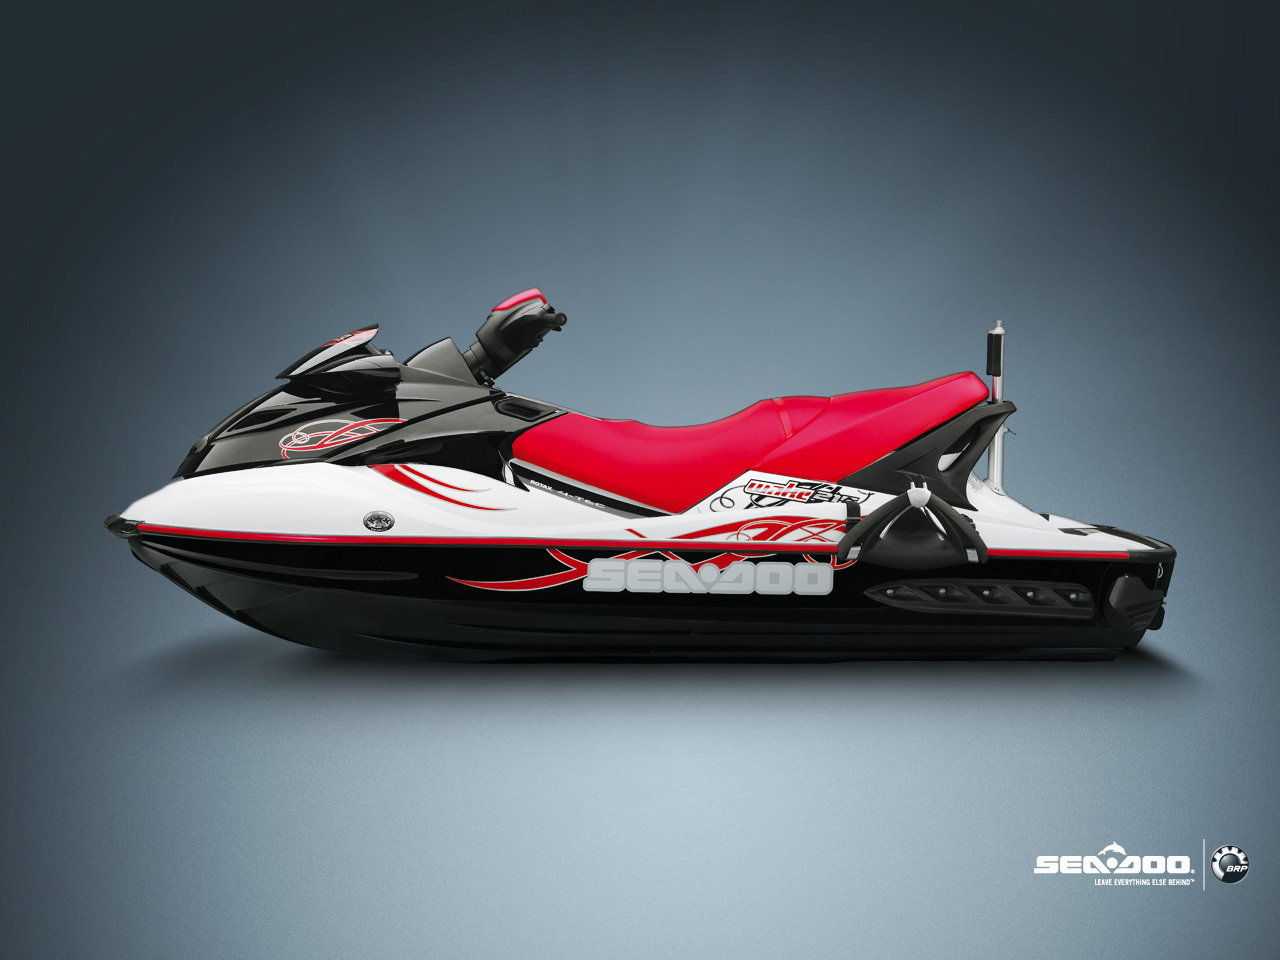 Images of Sea Doo Speed Boats